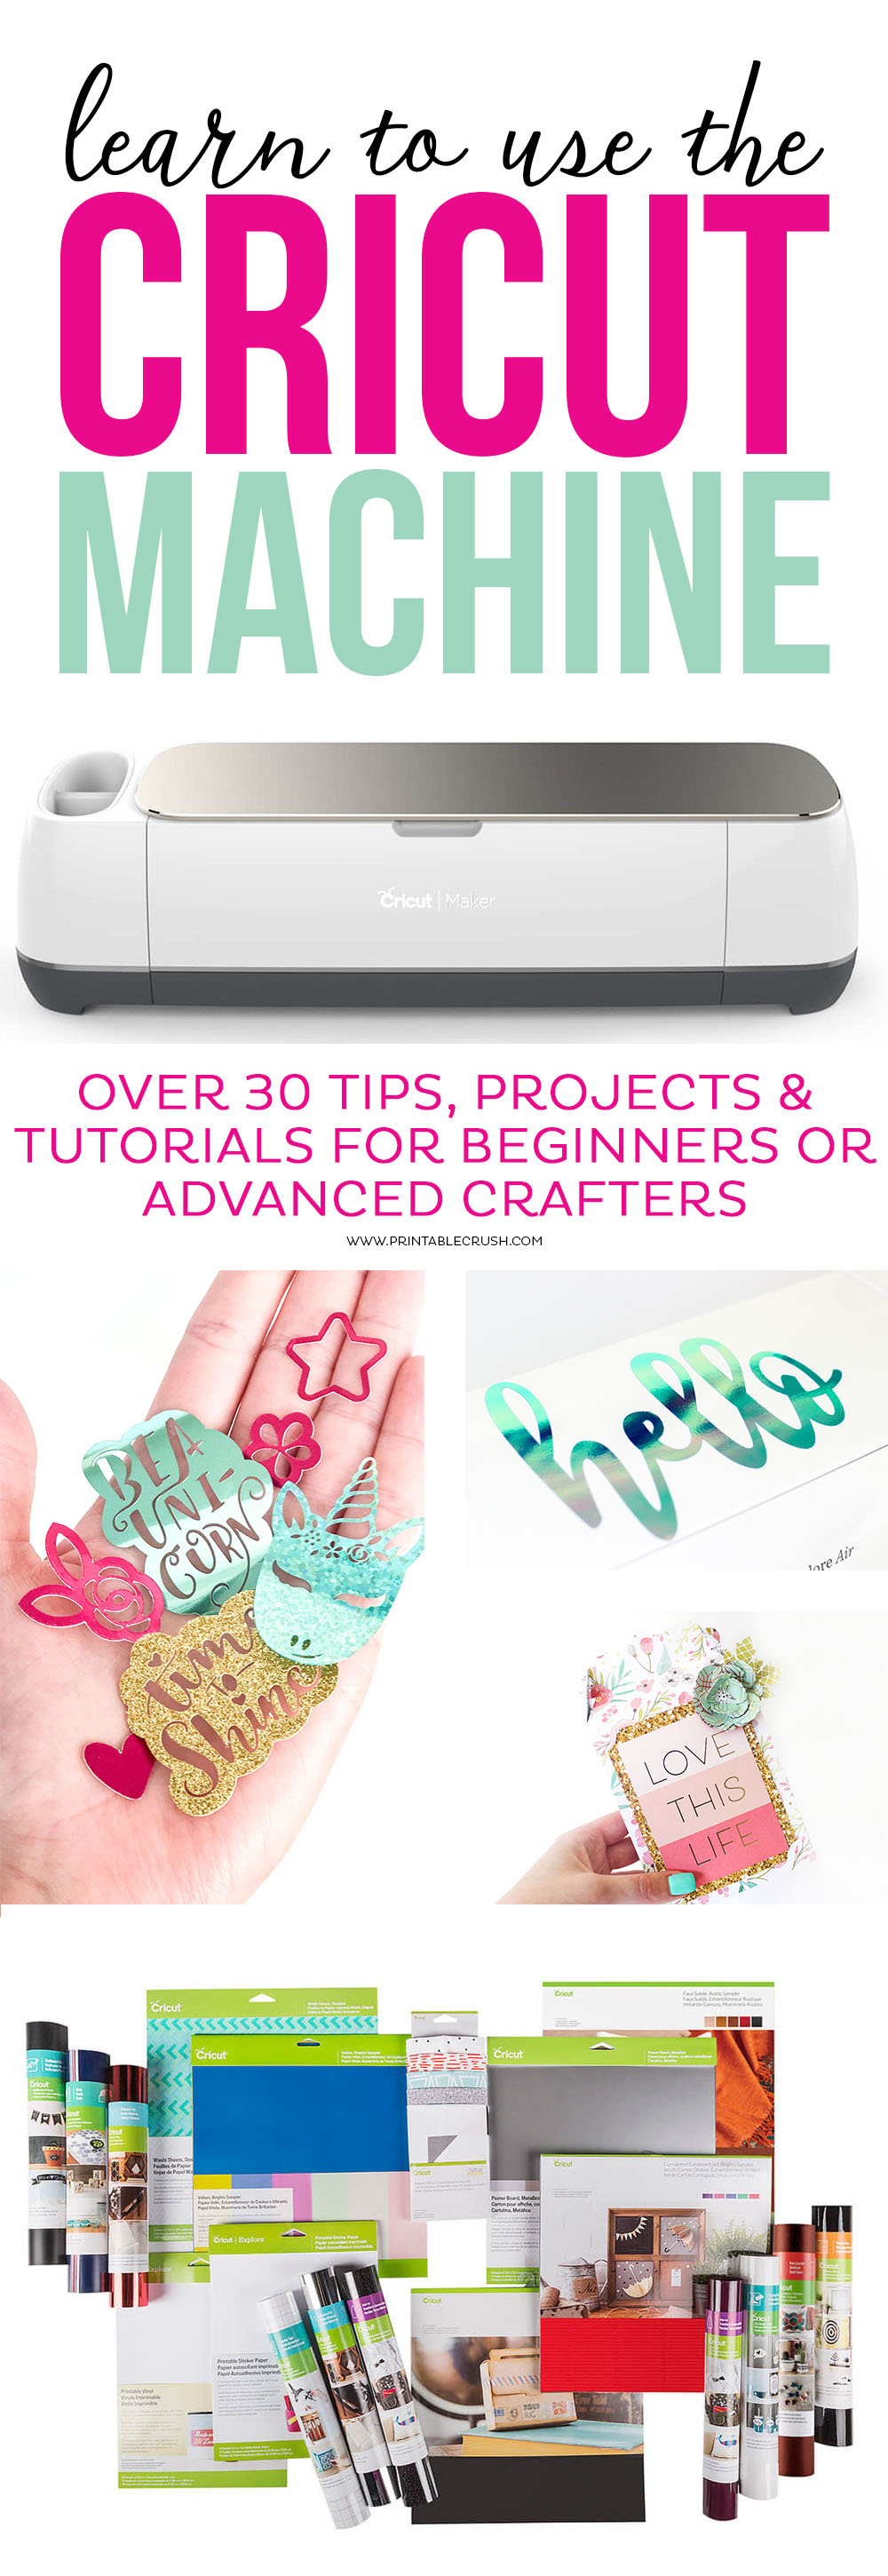 Learn to use the Cricut Machine with over 30 tips, projects, and tutorials for beginners or advanced crafters!